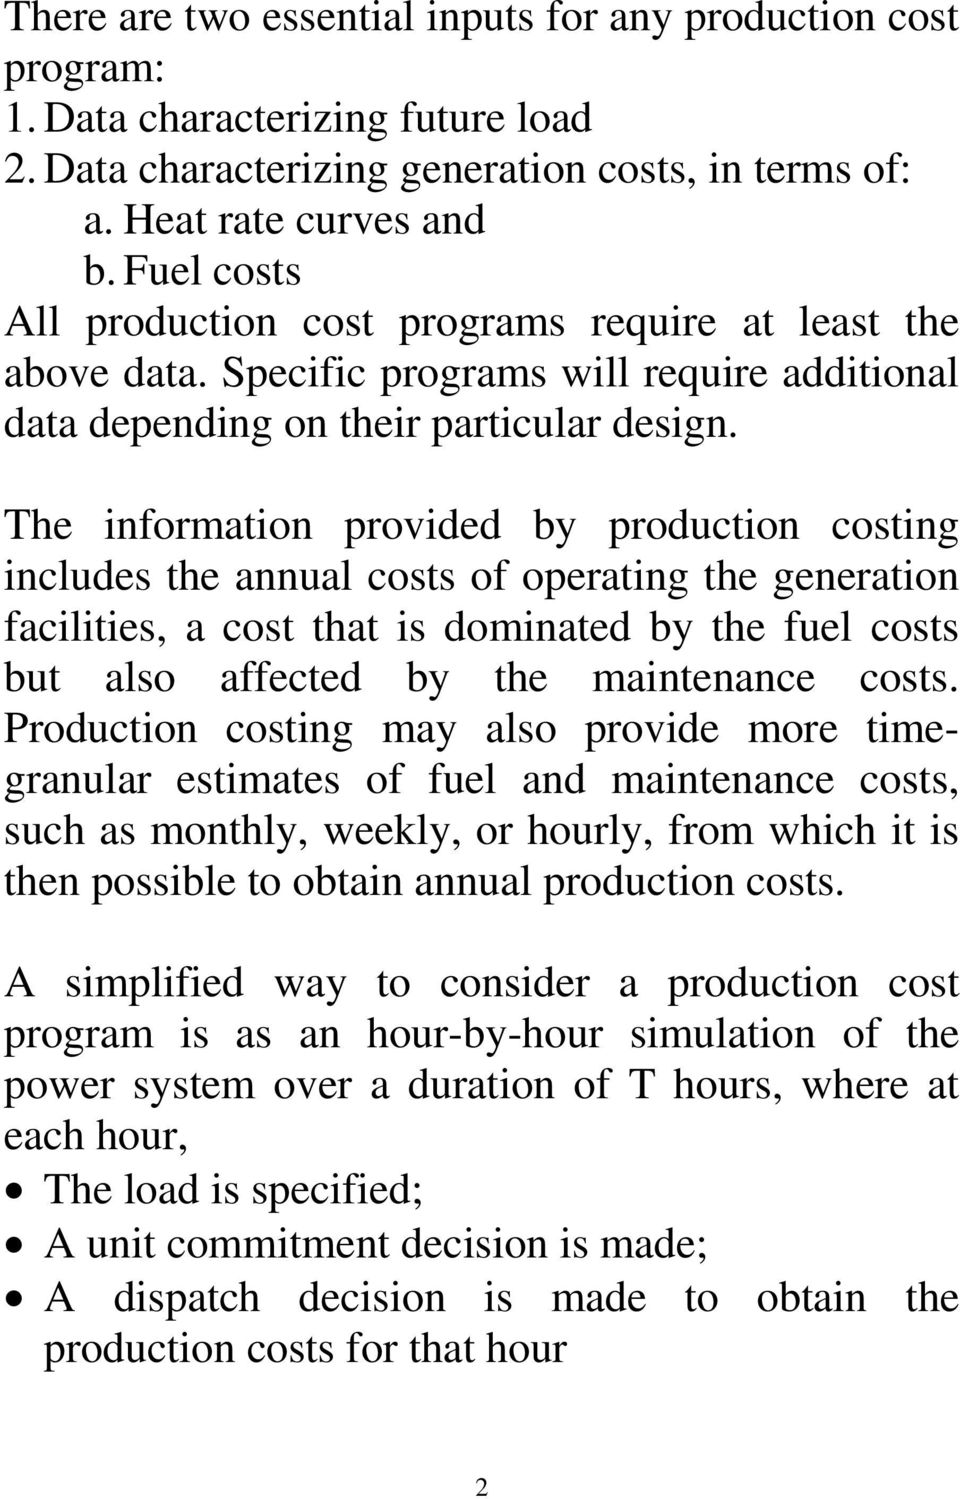 Th information providd by production costing includs th annual costs of oprating th gnration facilitis, a cost that is dominatd by th ful costs but also affctd by th maintnanc costs.